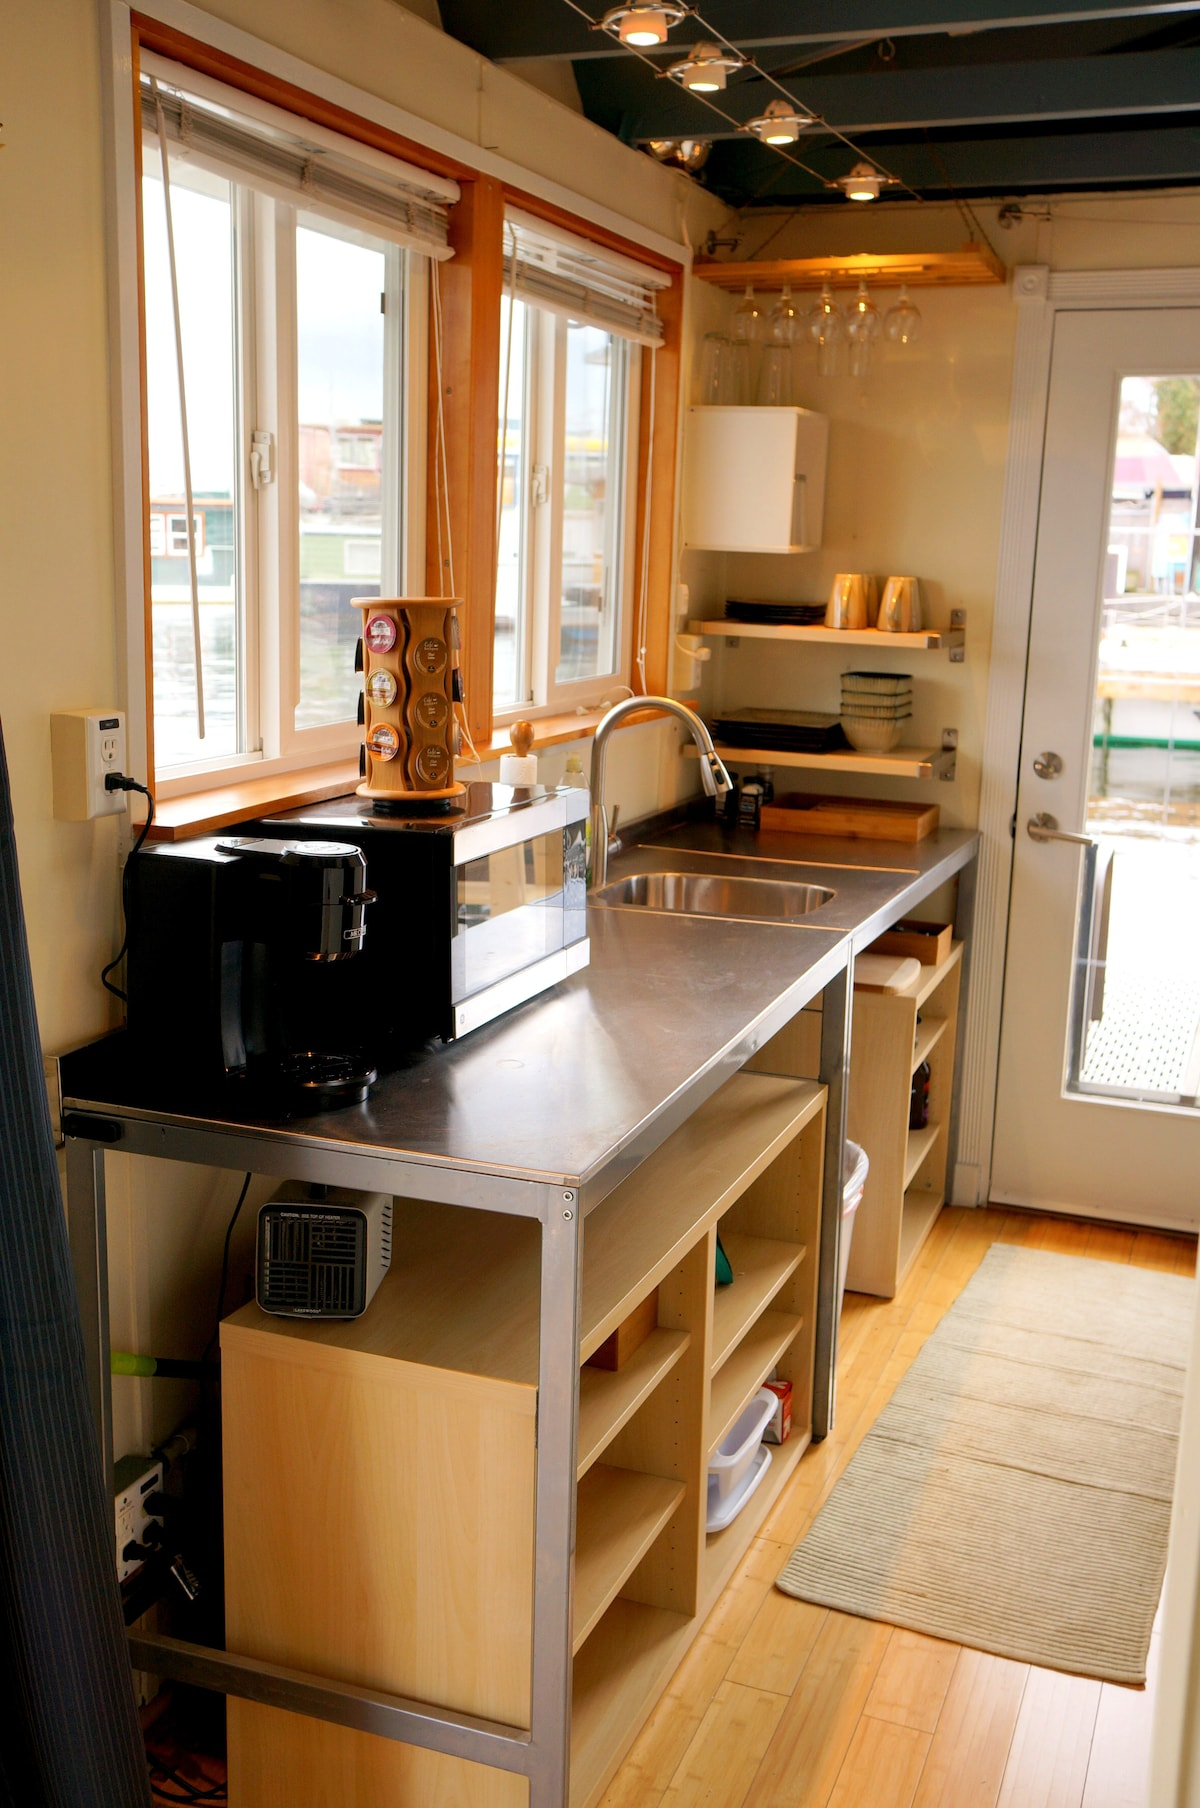 Kitchen includes stainless steel counter tops, microwave, single stove top burner, and plenty of pots and pans to cook with.